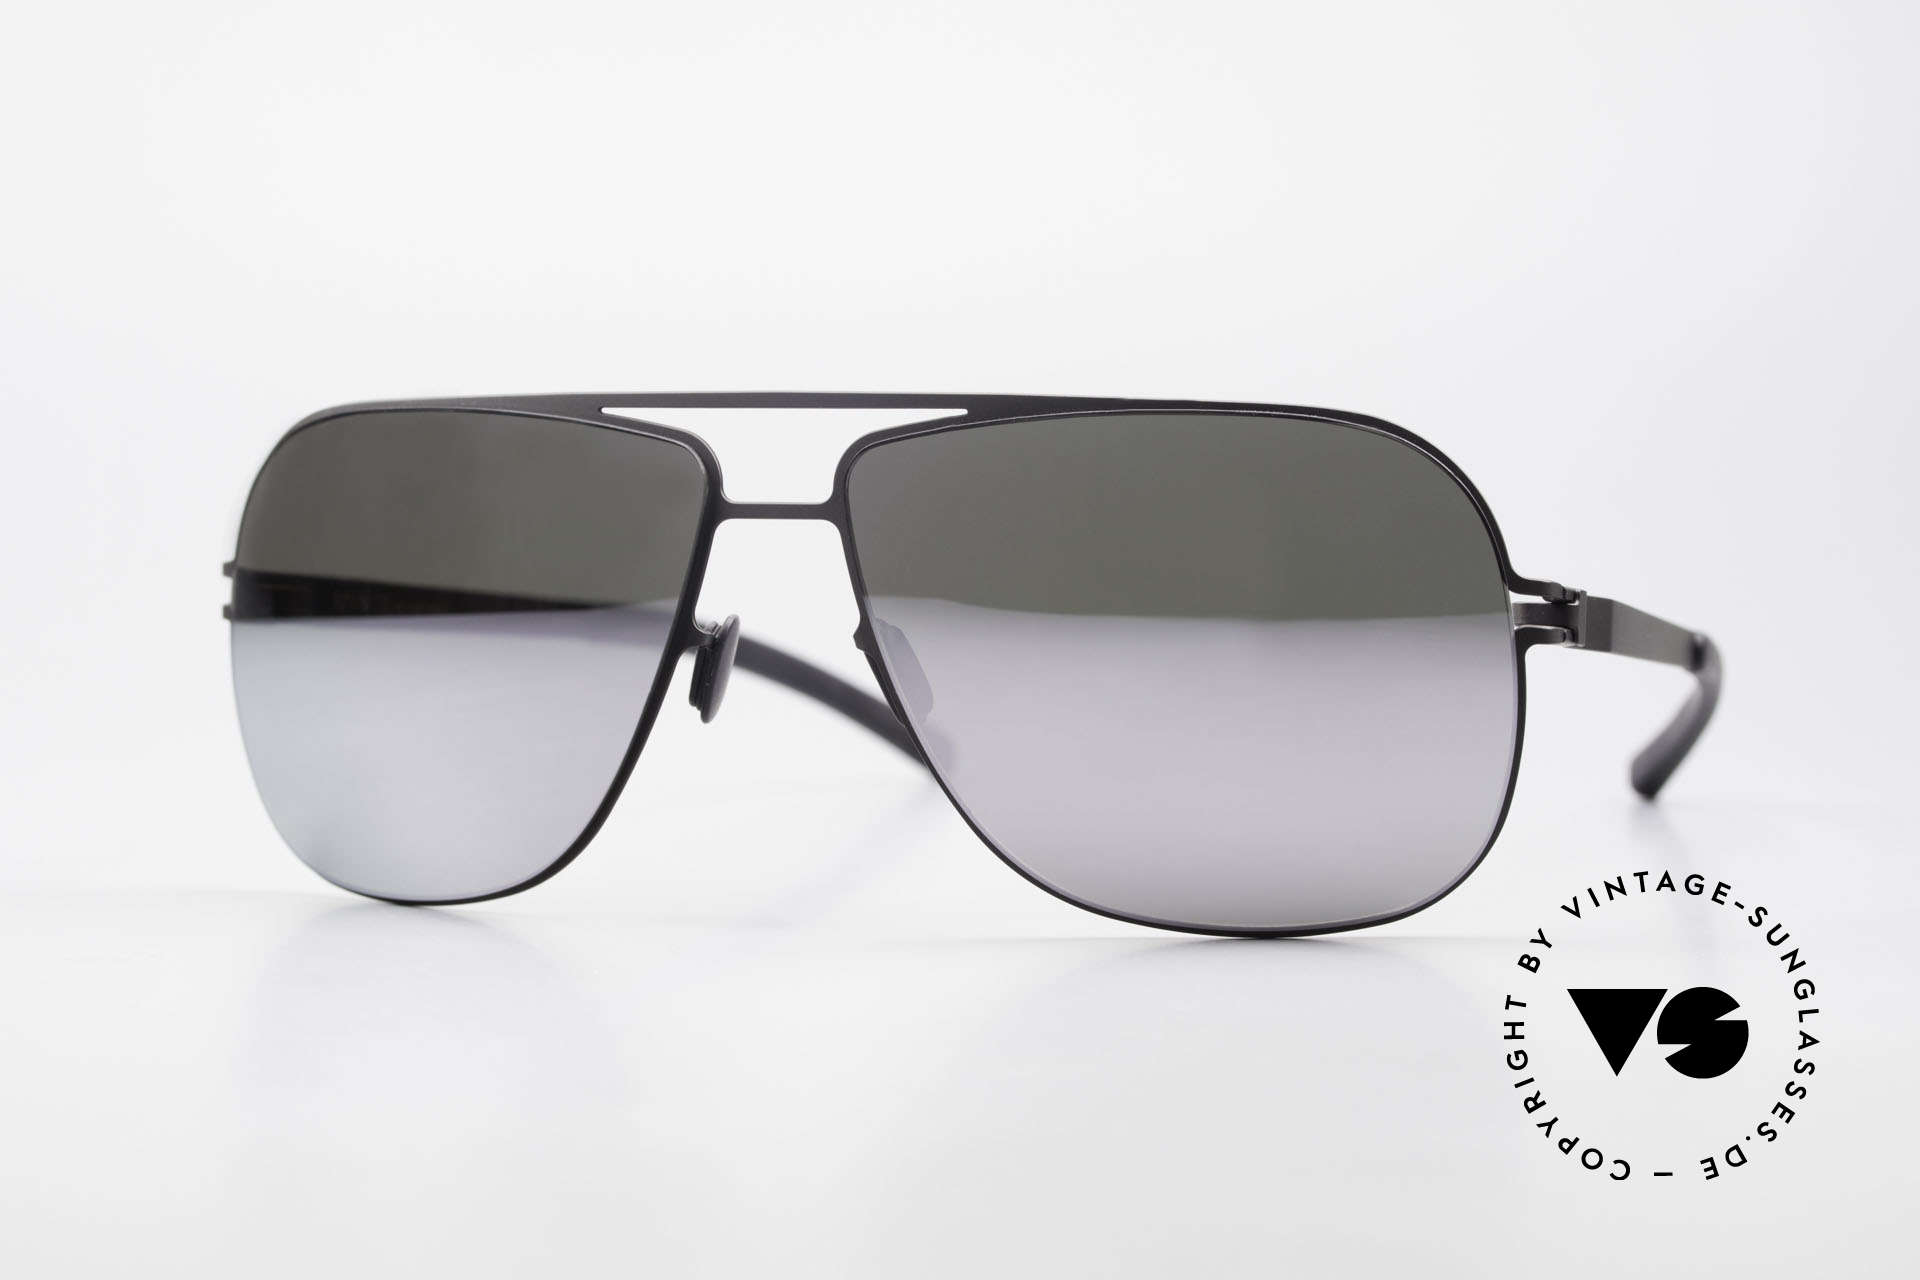 Mykita Rolf Mirrored Celebrity Sunglasses, VINTAGE Angelina Jolie Mykita sunglasses from 2011, Made for Men and Women